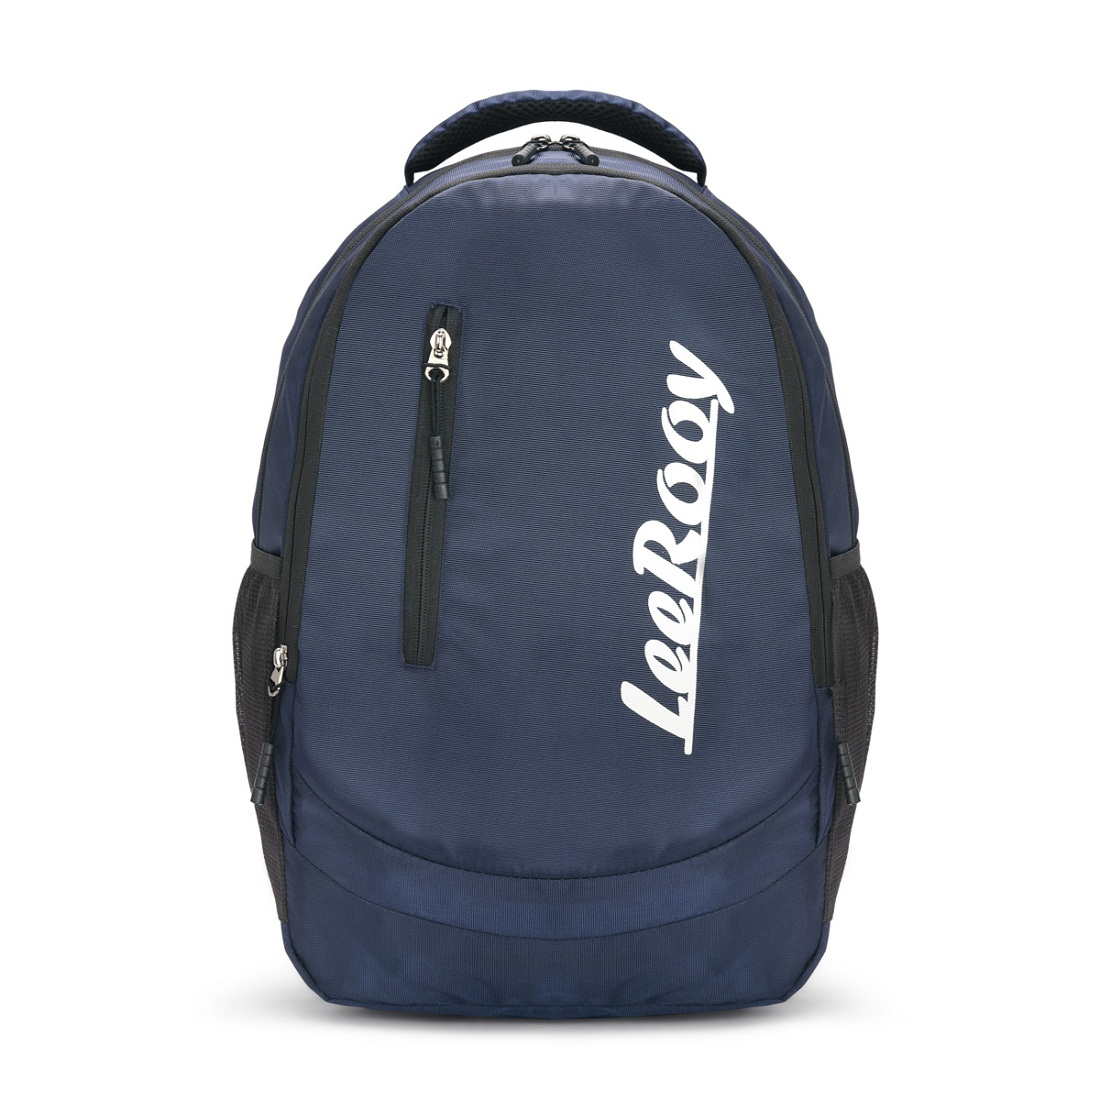 Leerooy Blue Soft Faveic Laptop Bags/ School Bags/ Office Bags / College Bags For Girls And Boys